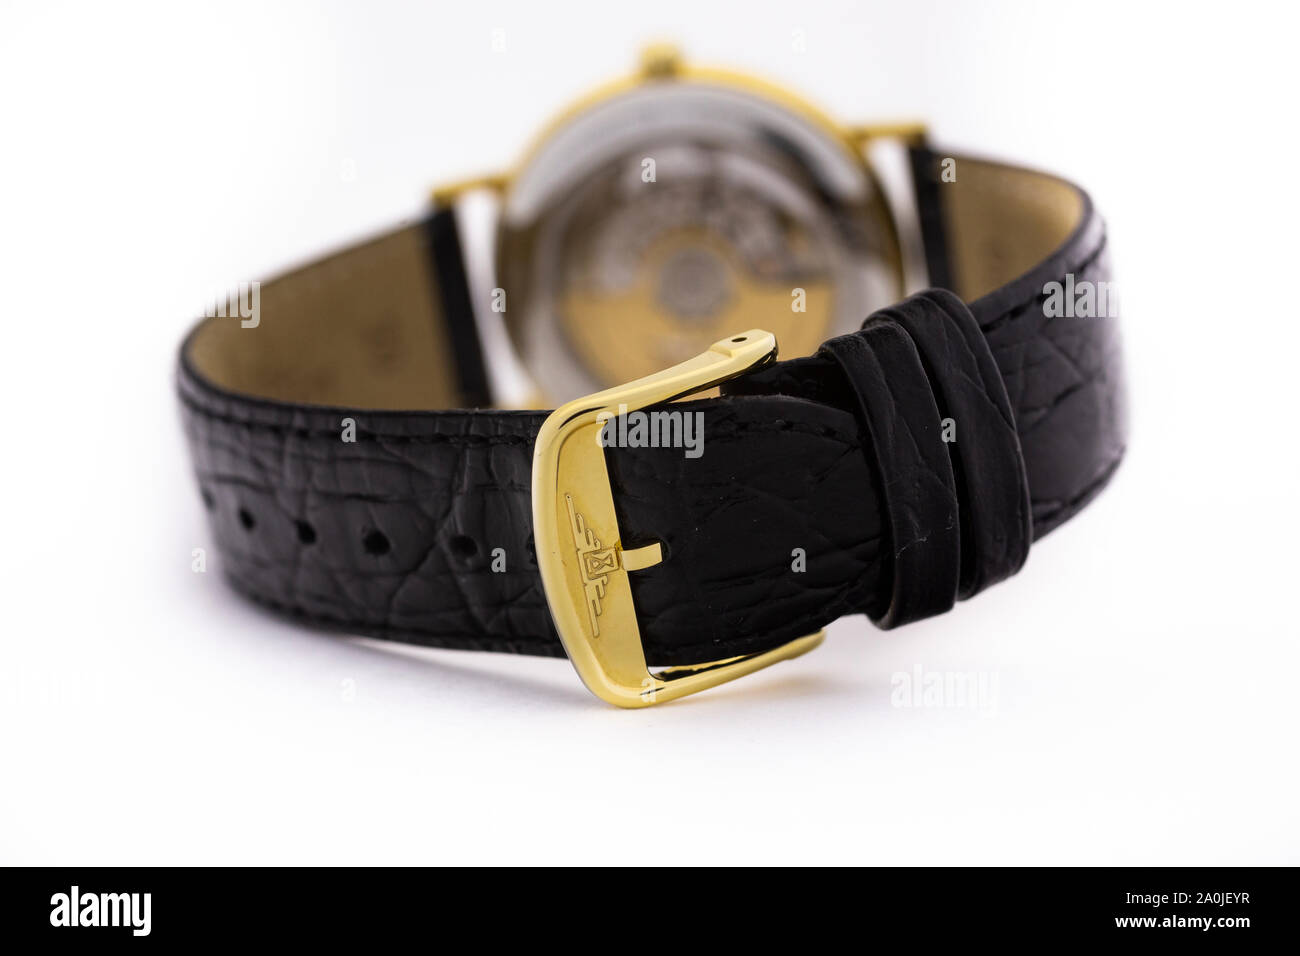 Saint-Imier, Switzerland September 15 2019 - Longines La Grande Classic mechamic watch mechanism Automatic White Dial Men's Watch swiss made luxury Stock Photo